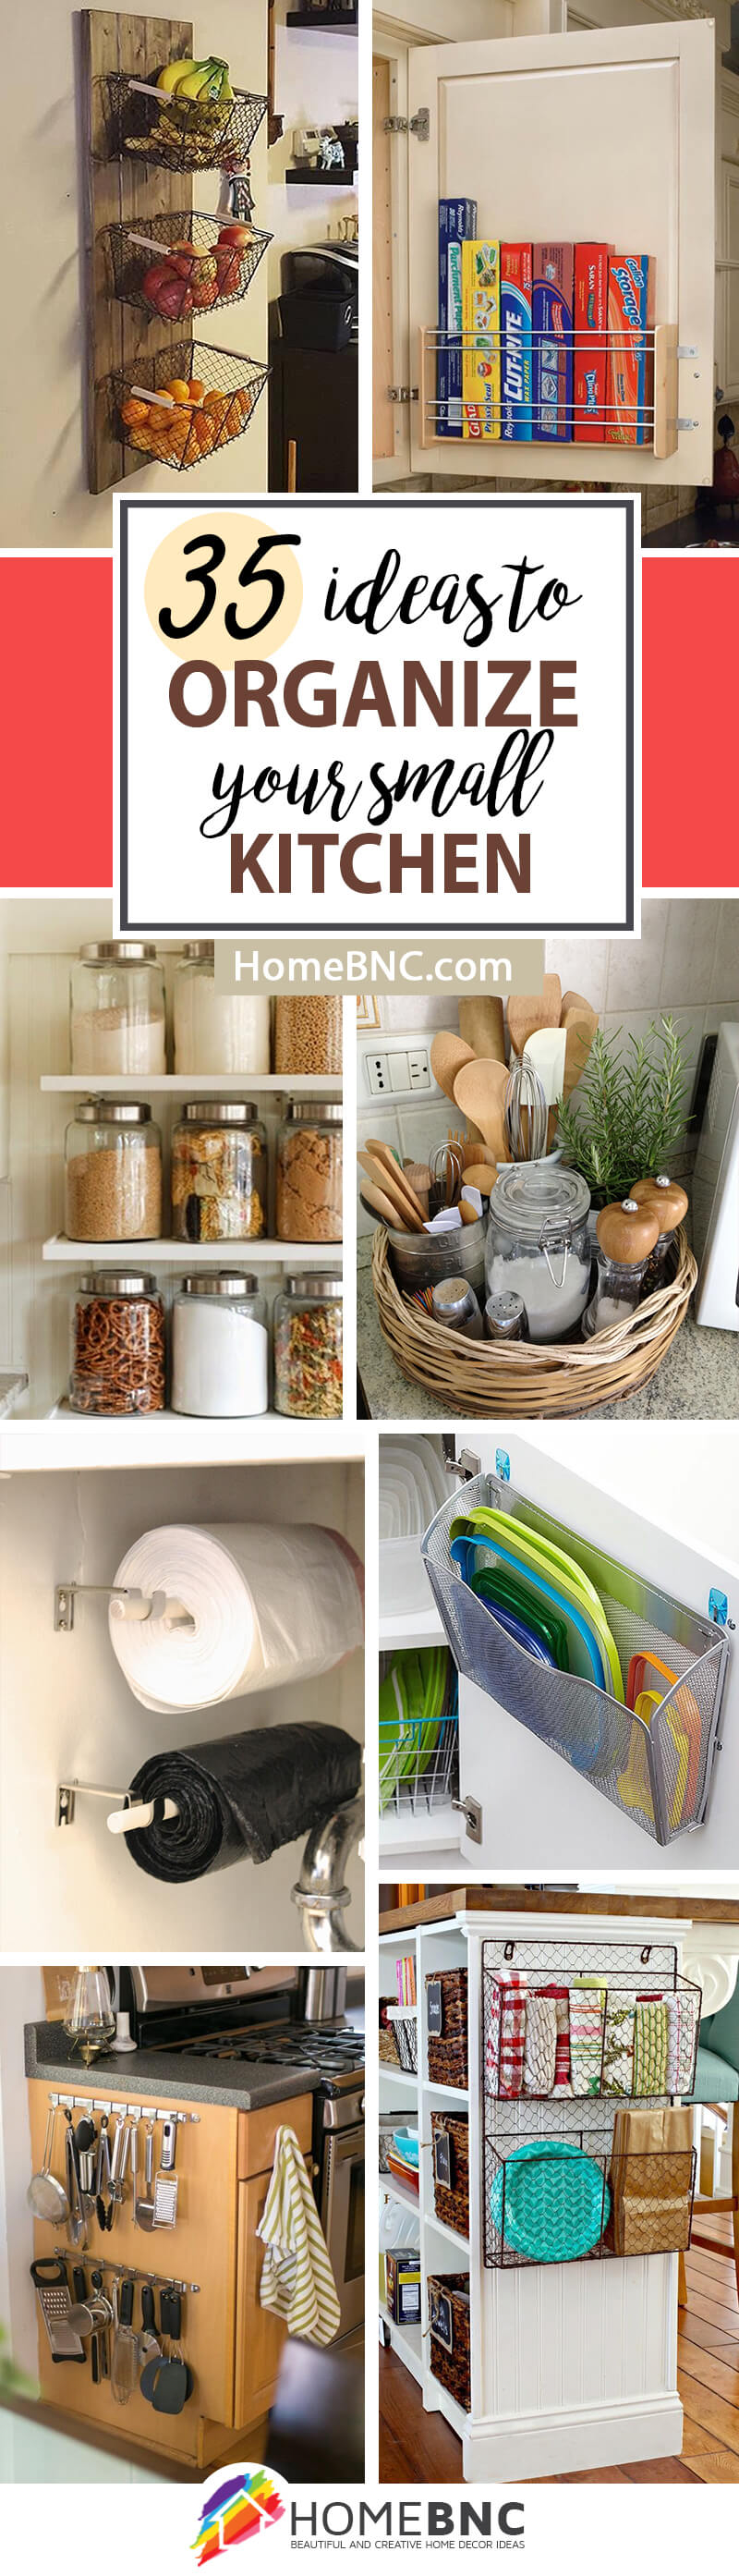 Ideas For Organizing A Tiny Kitchen on organizing bedroom ideas, organizing a tiny house, organizing a small bathroom ideas,